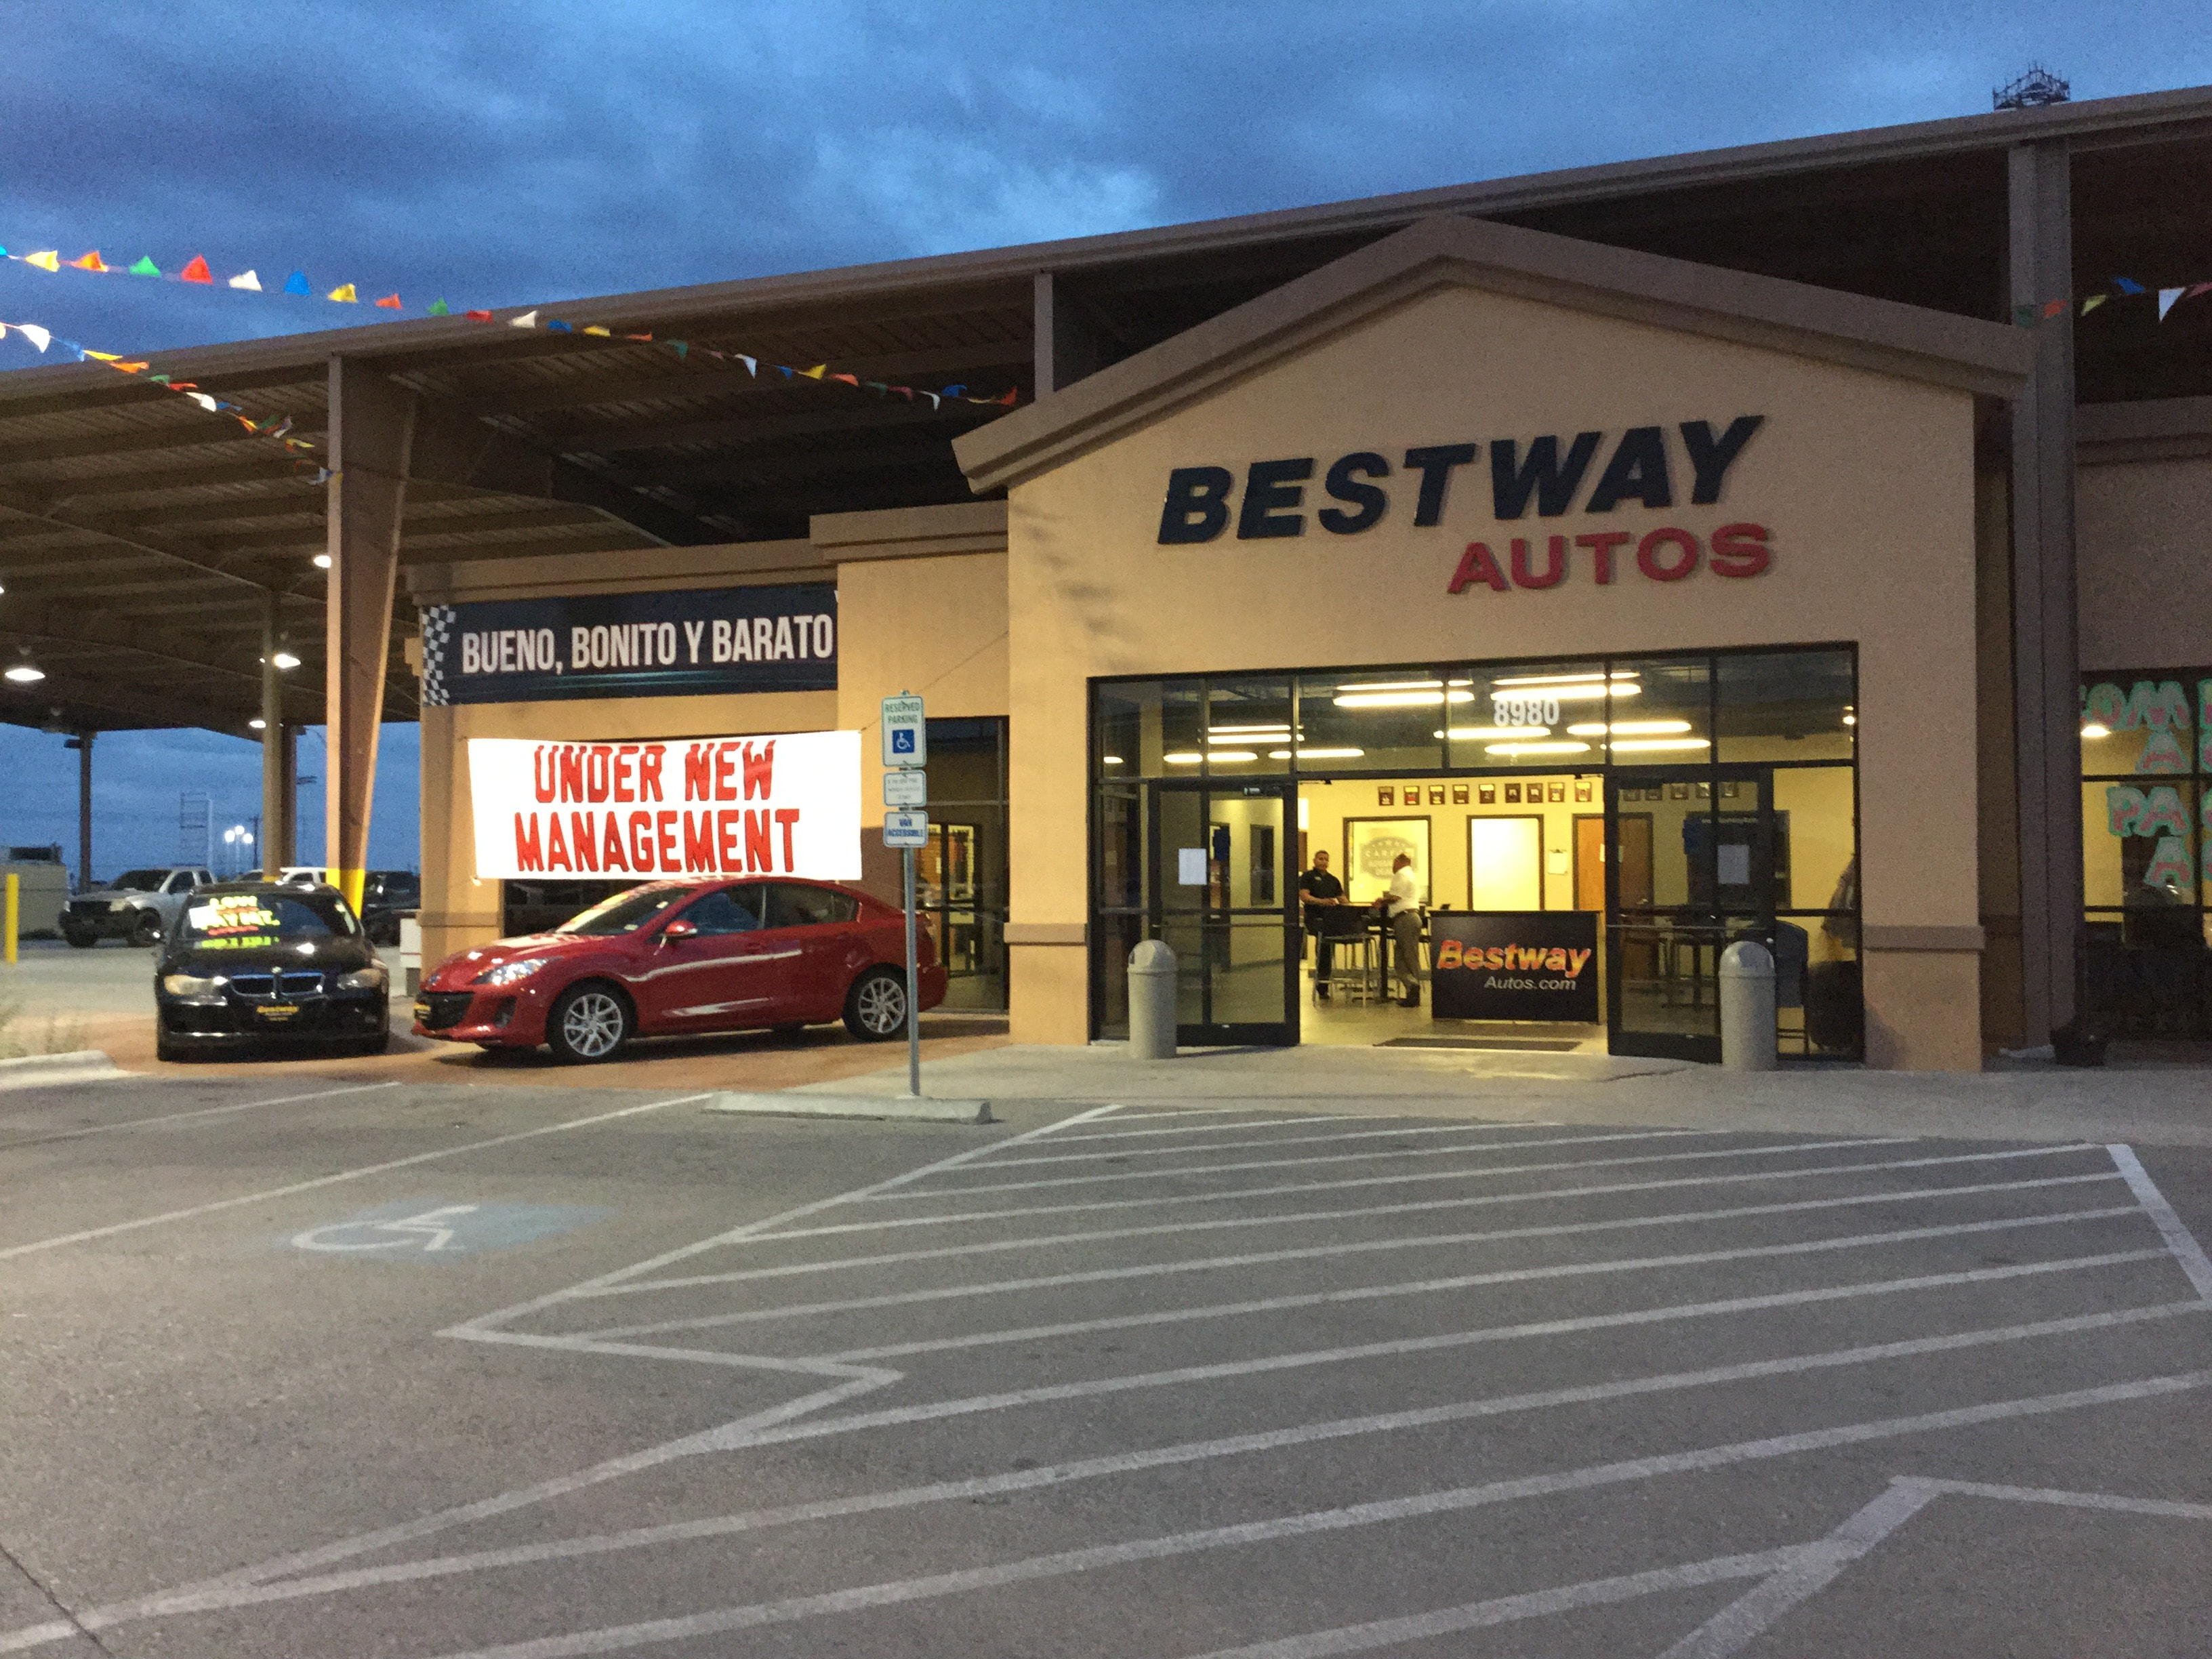 About bestway autos the choice for used car dealerships in el paso tx